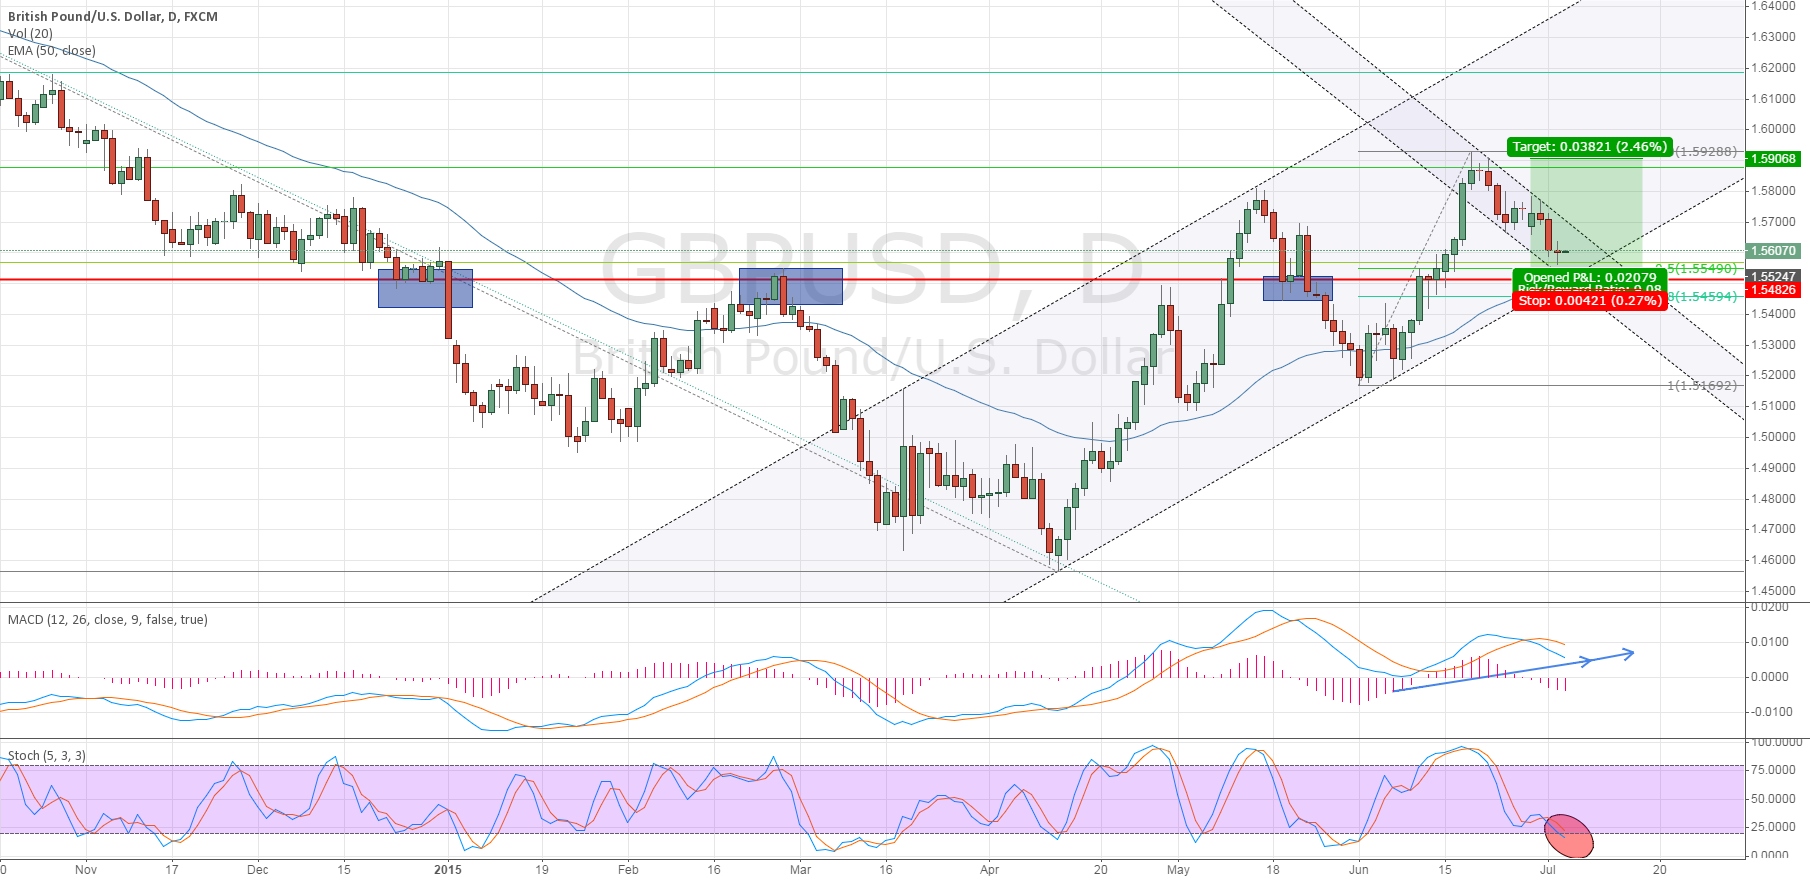 GBP/USD DAY